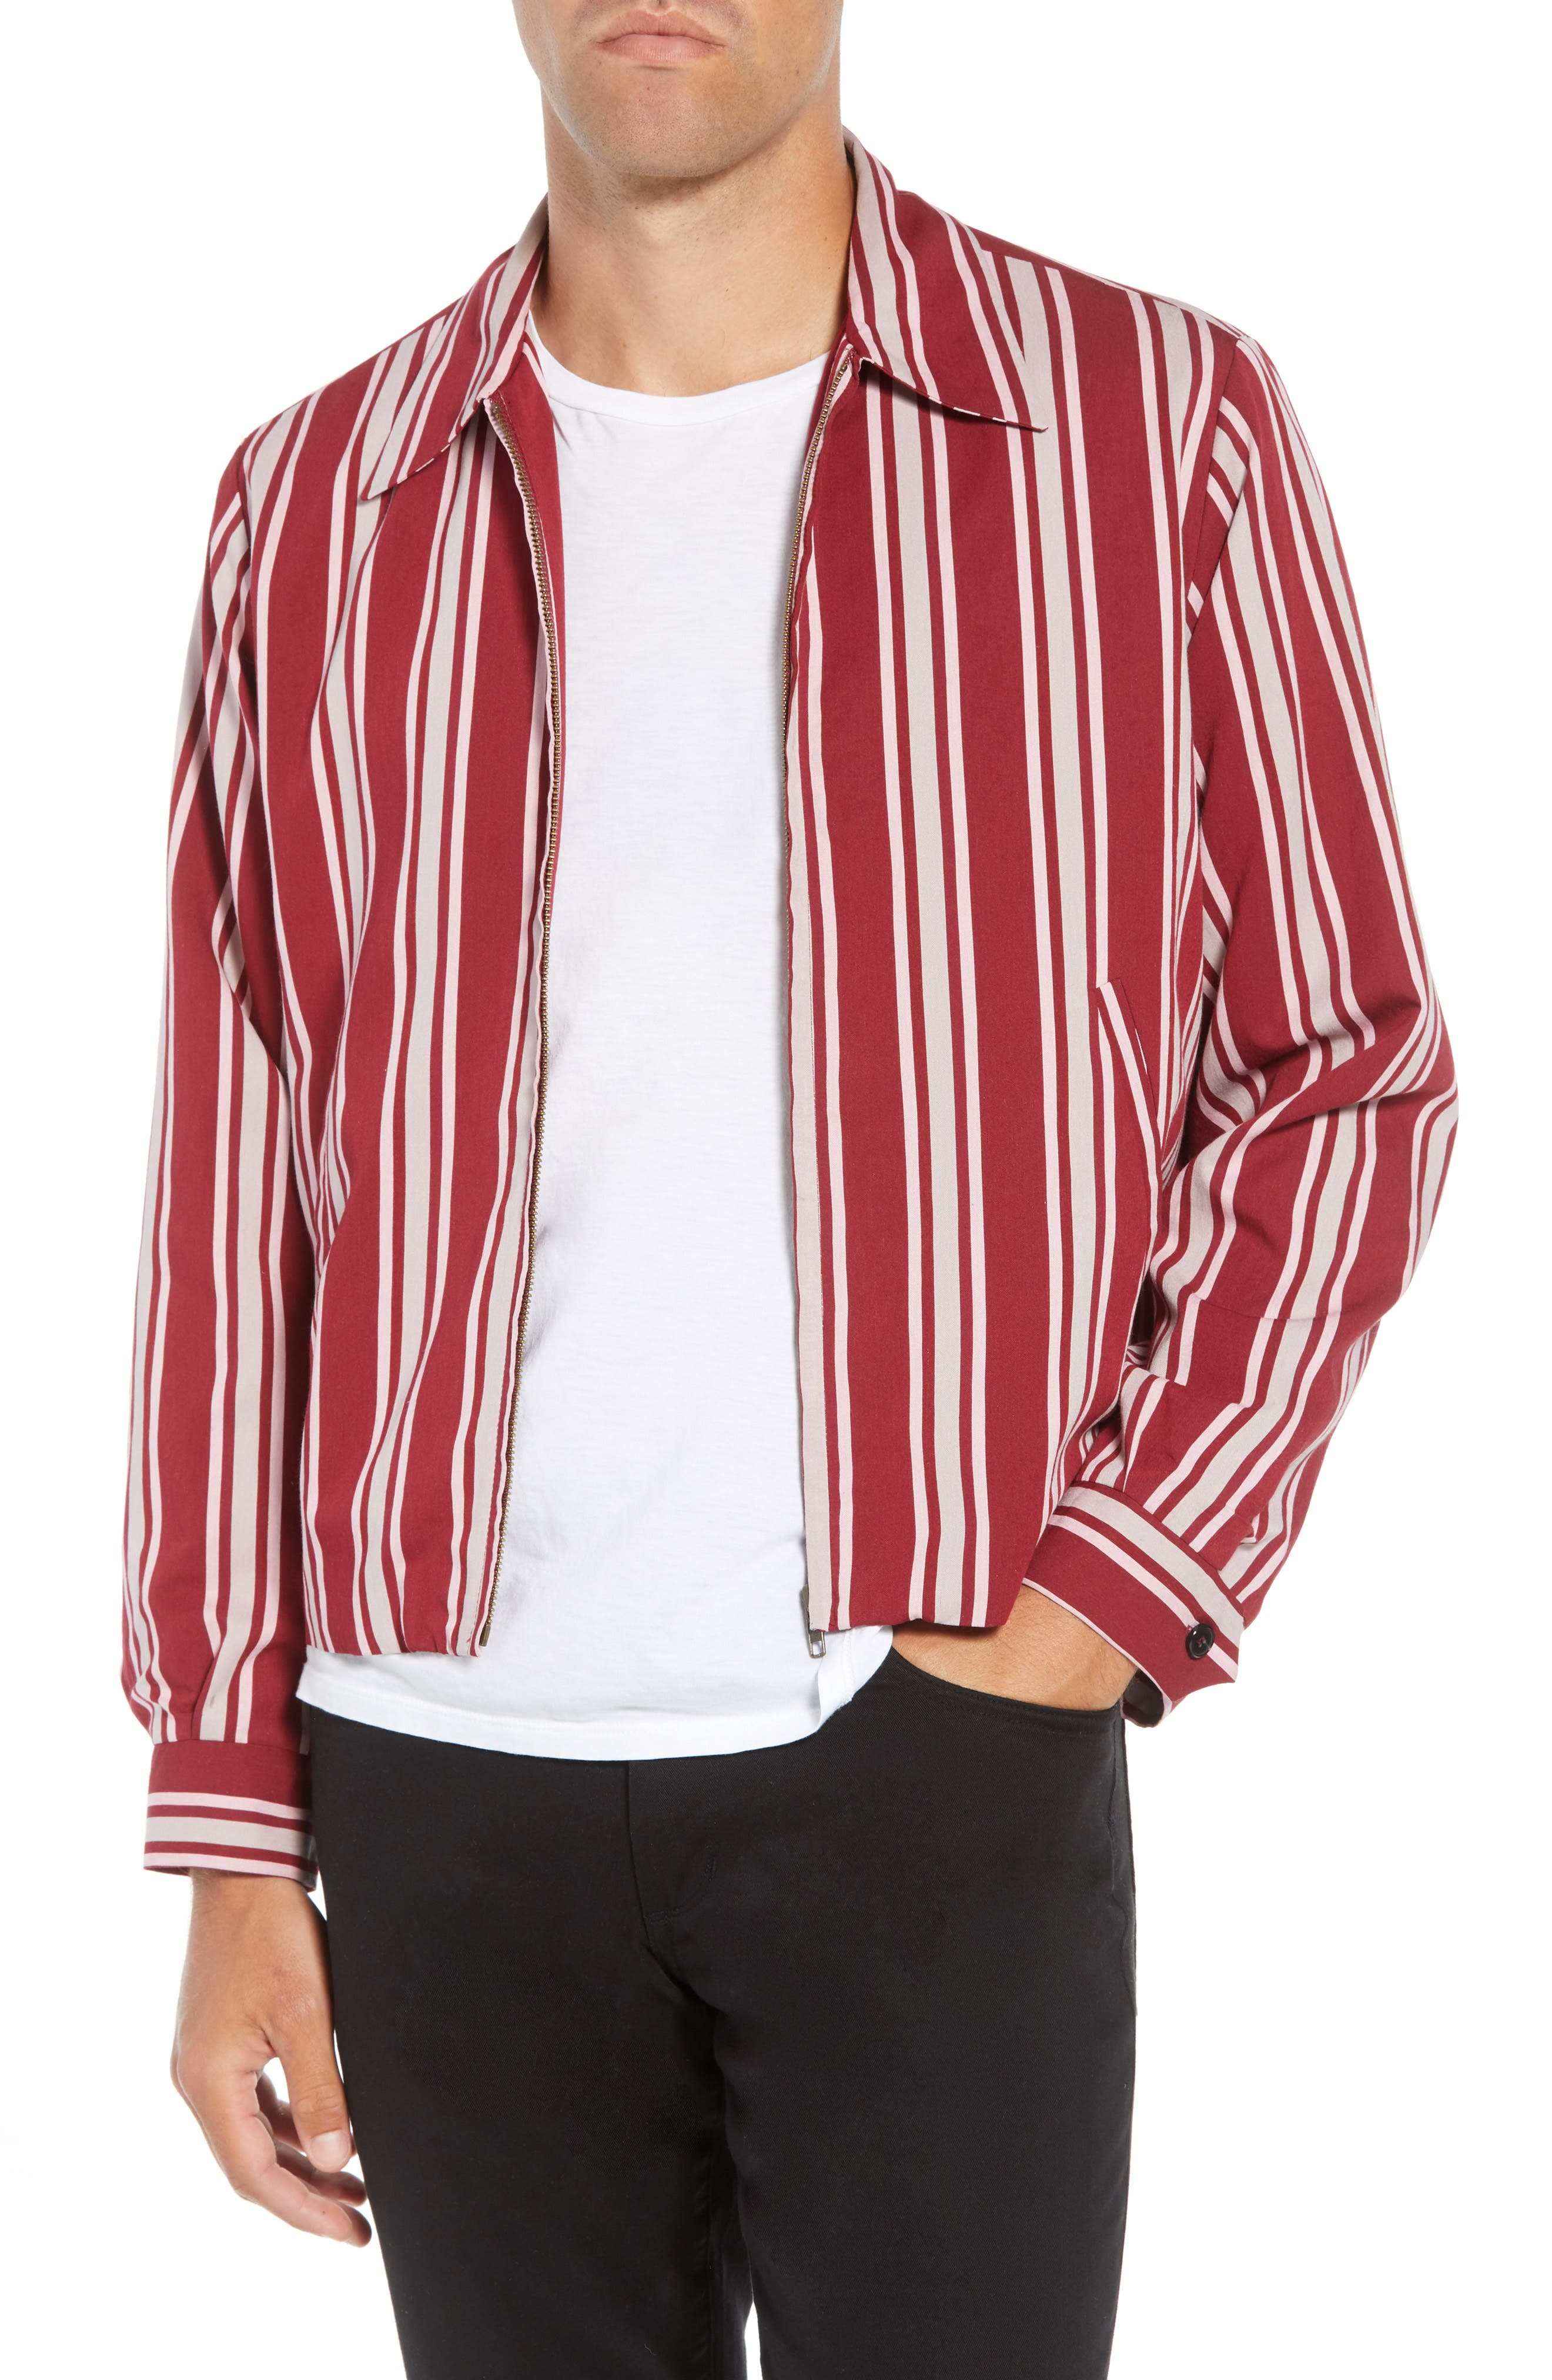 Fifty Regular Fit Shirt Jacket,                             Main thumbnail 1, color,                             RED STRIPE